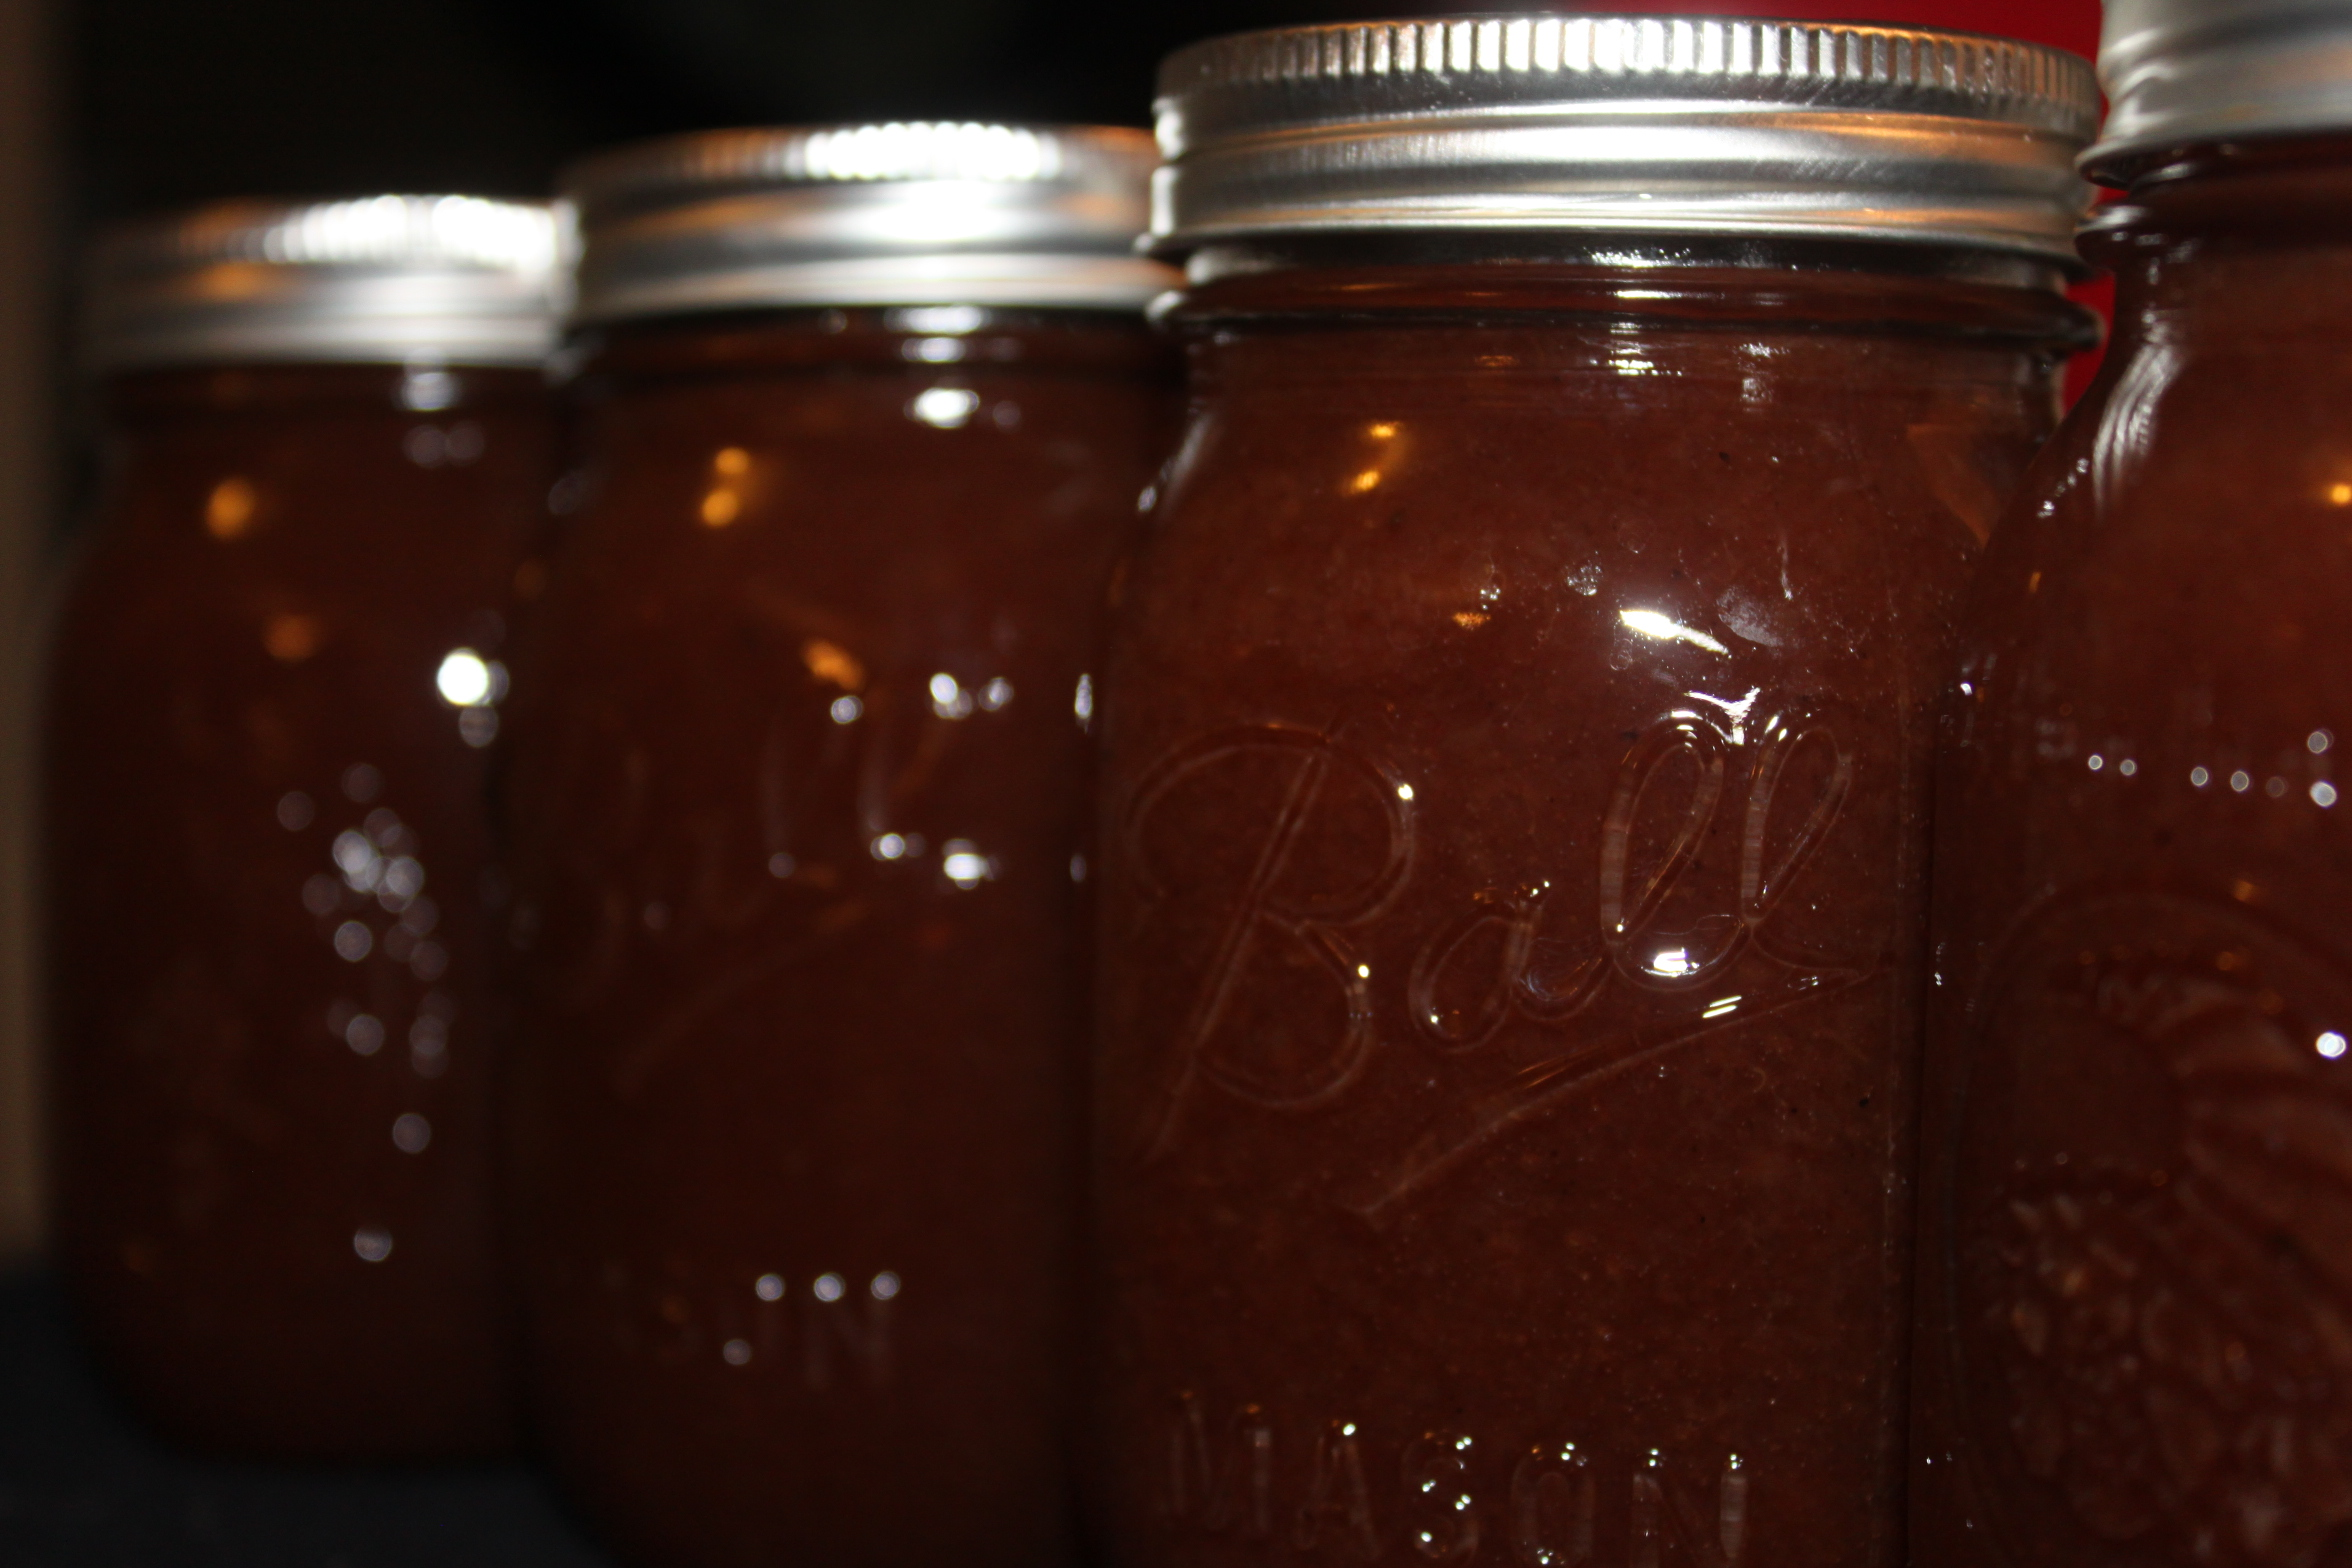 Apple Butter - Canned